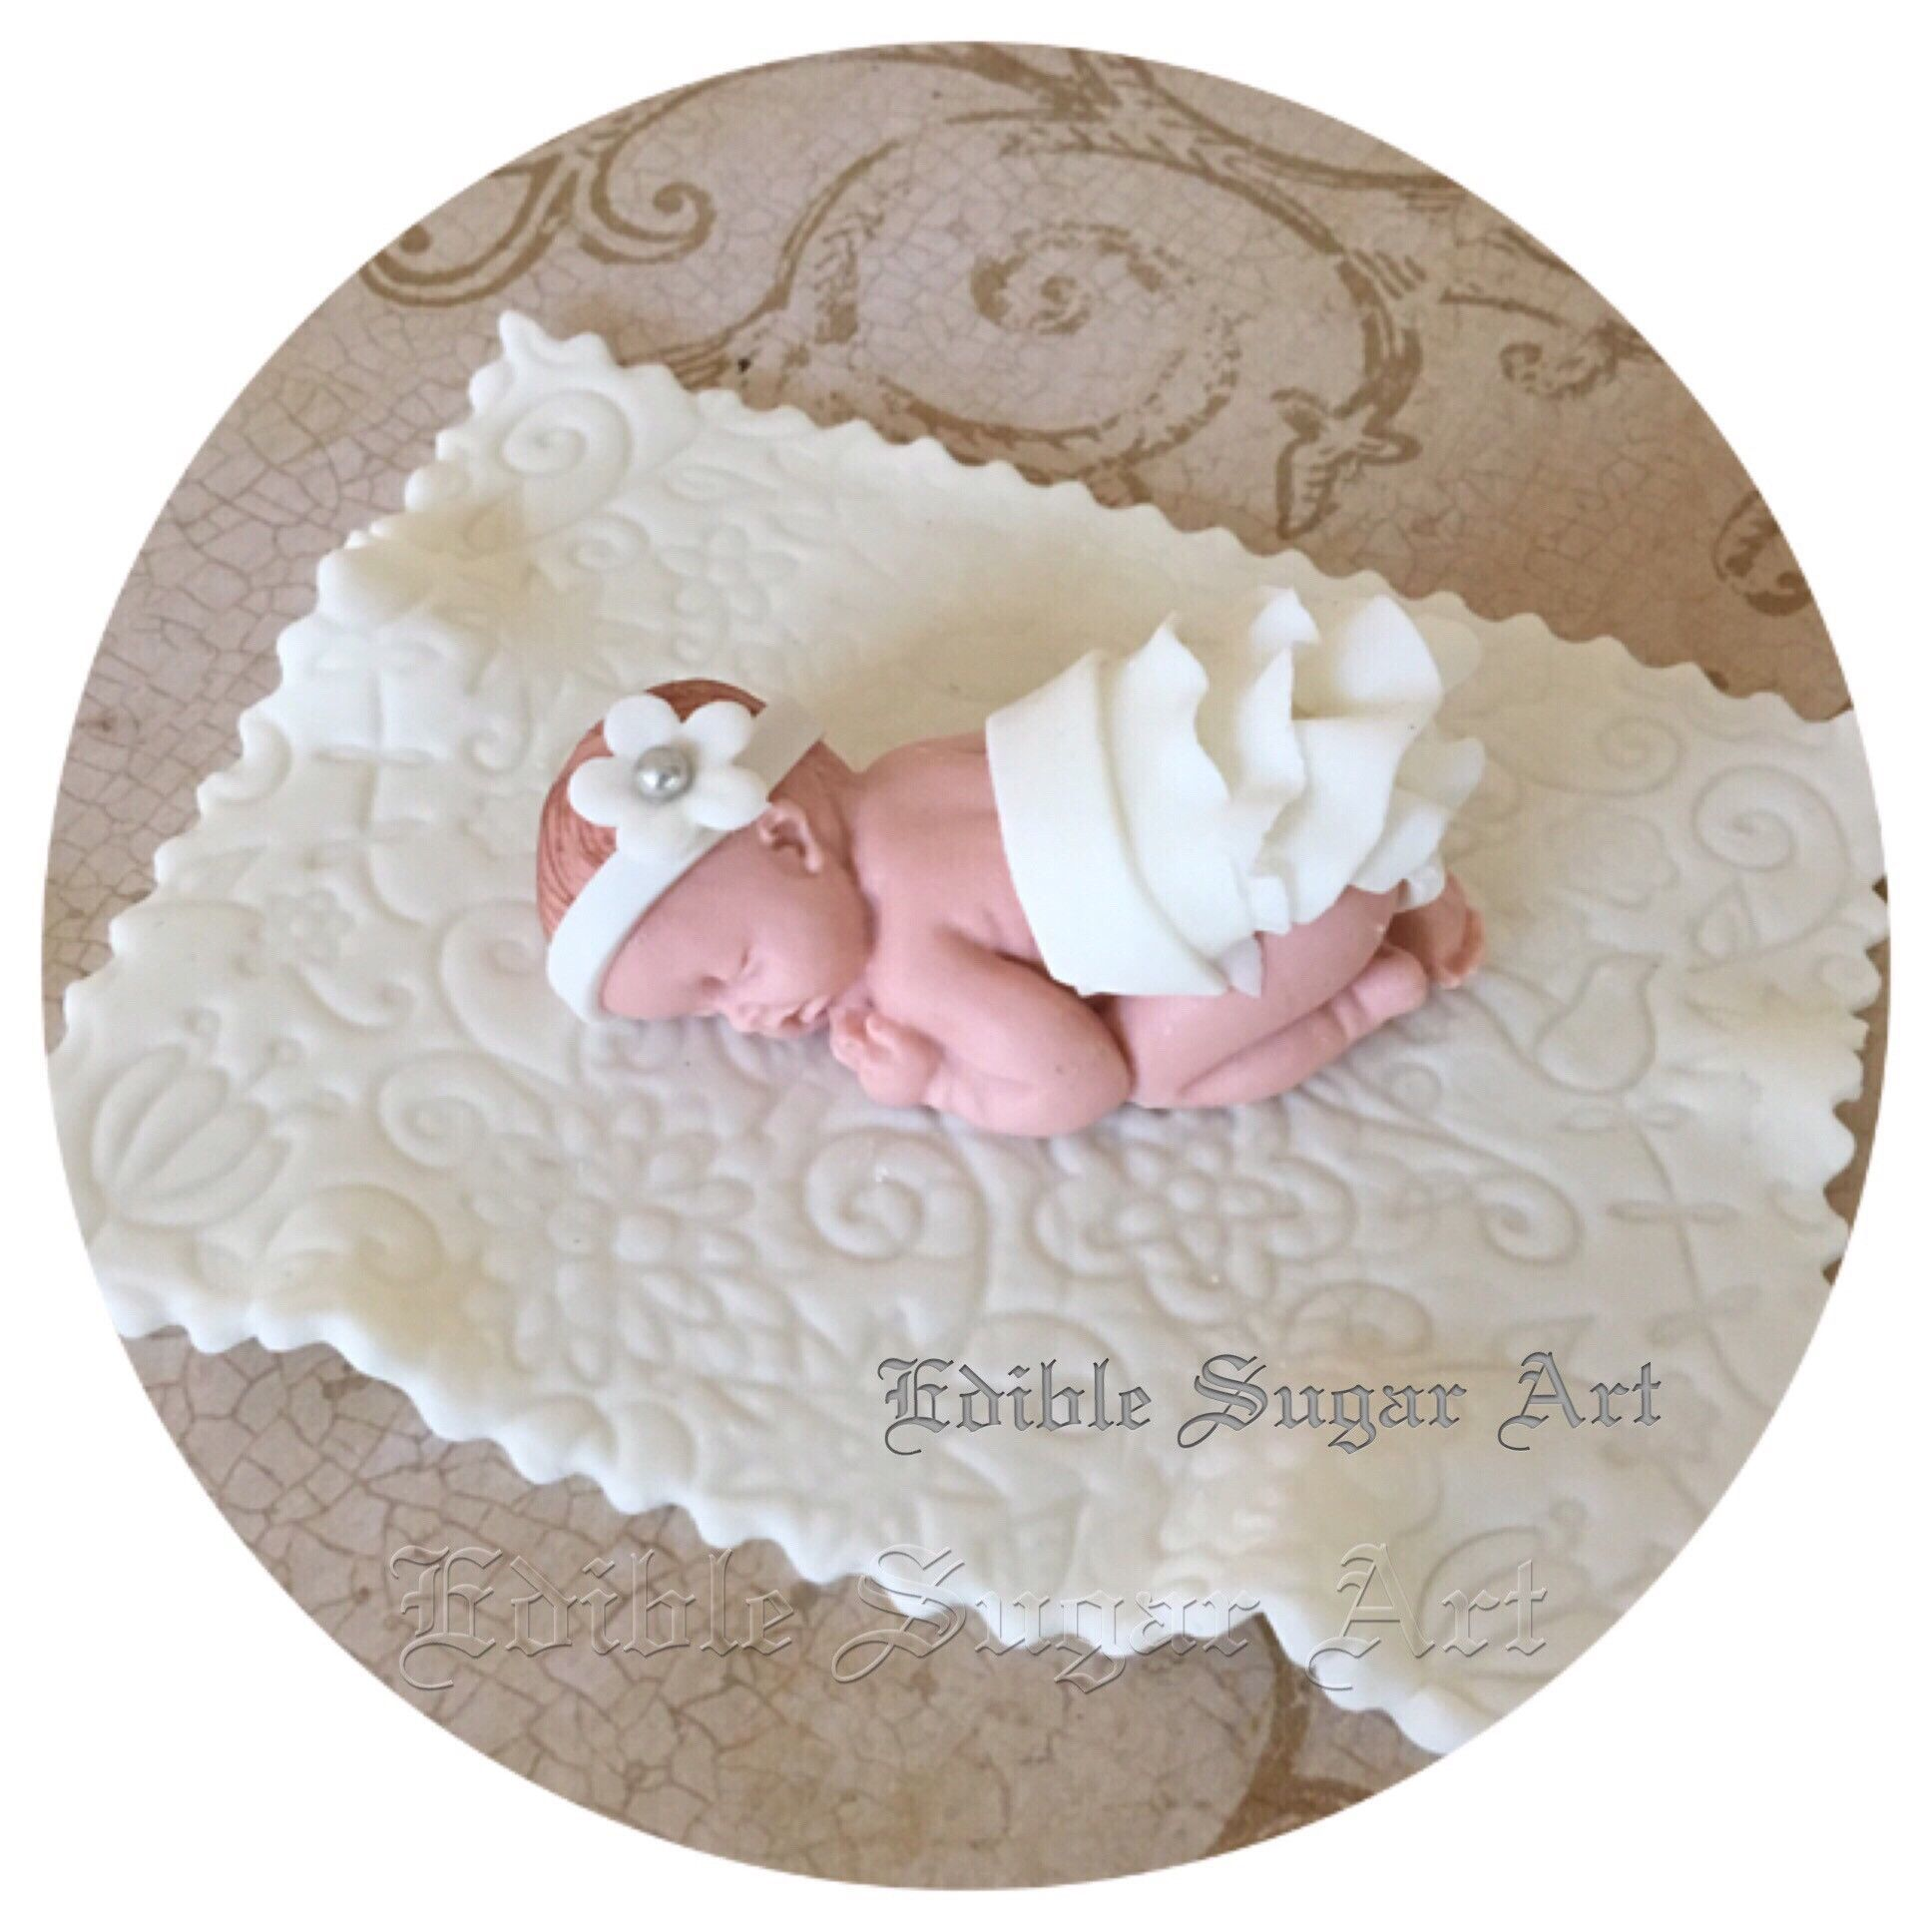 Baby Shower Decorated Cakes: BABY SHOWER CAKE Topper Fondant Baby Shower Decorations